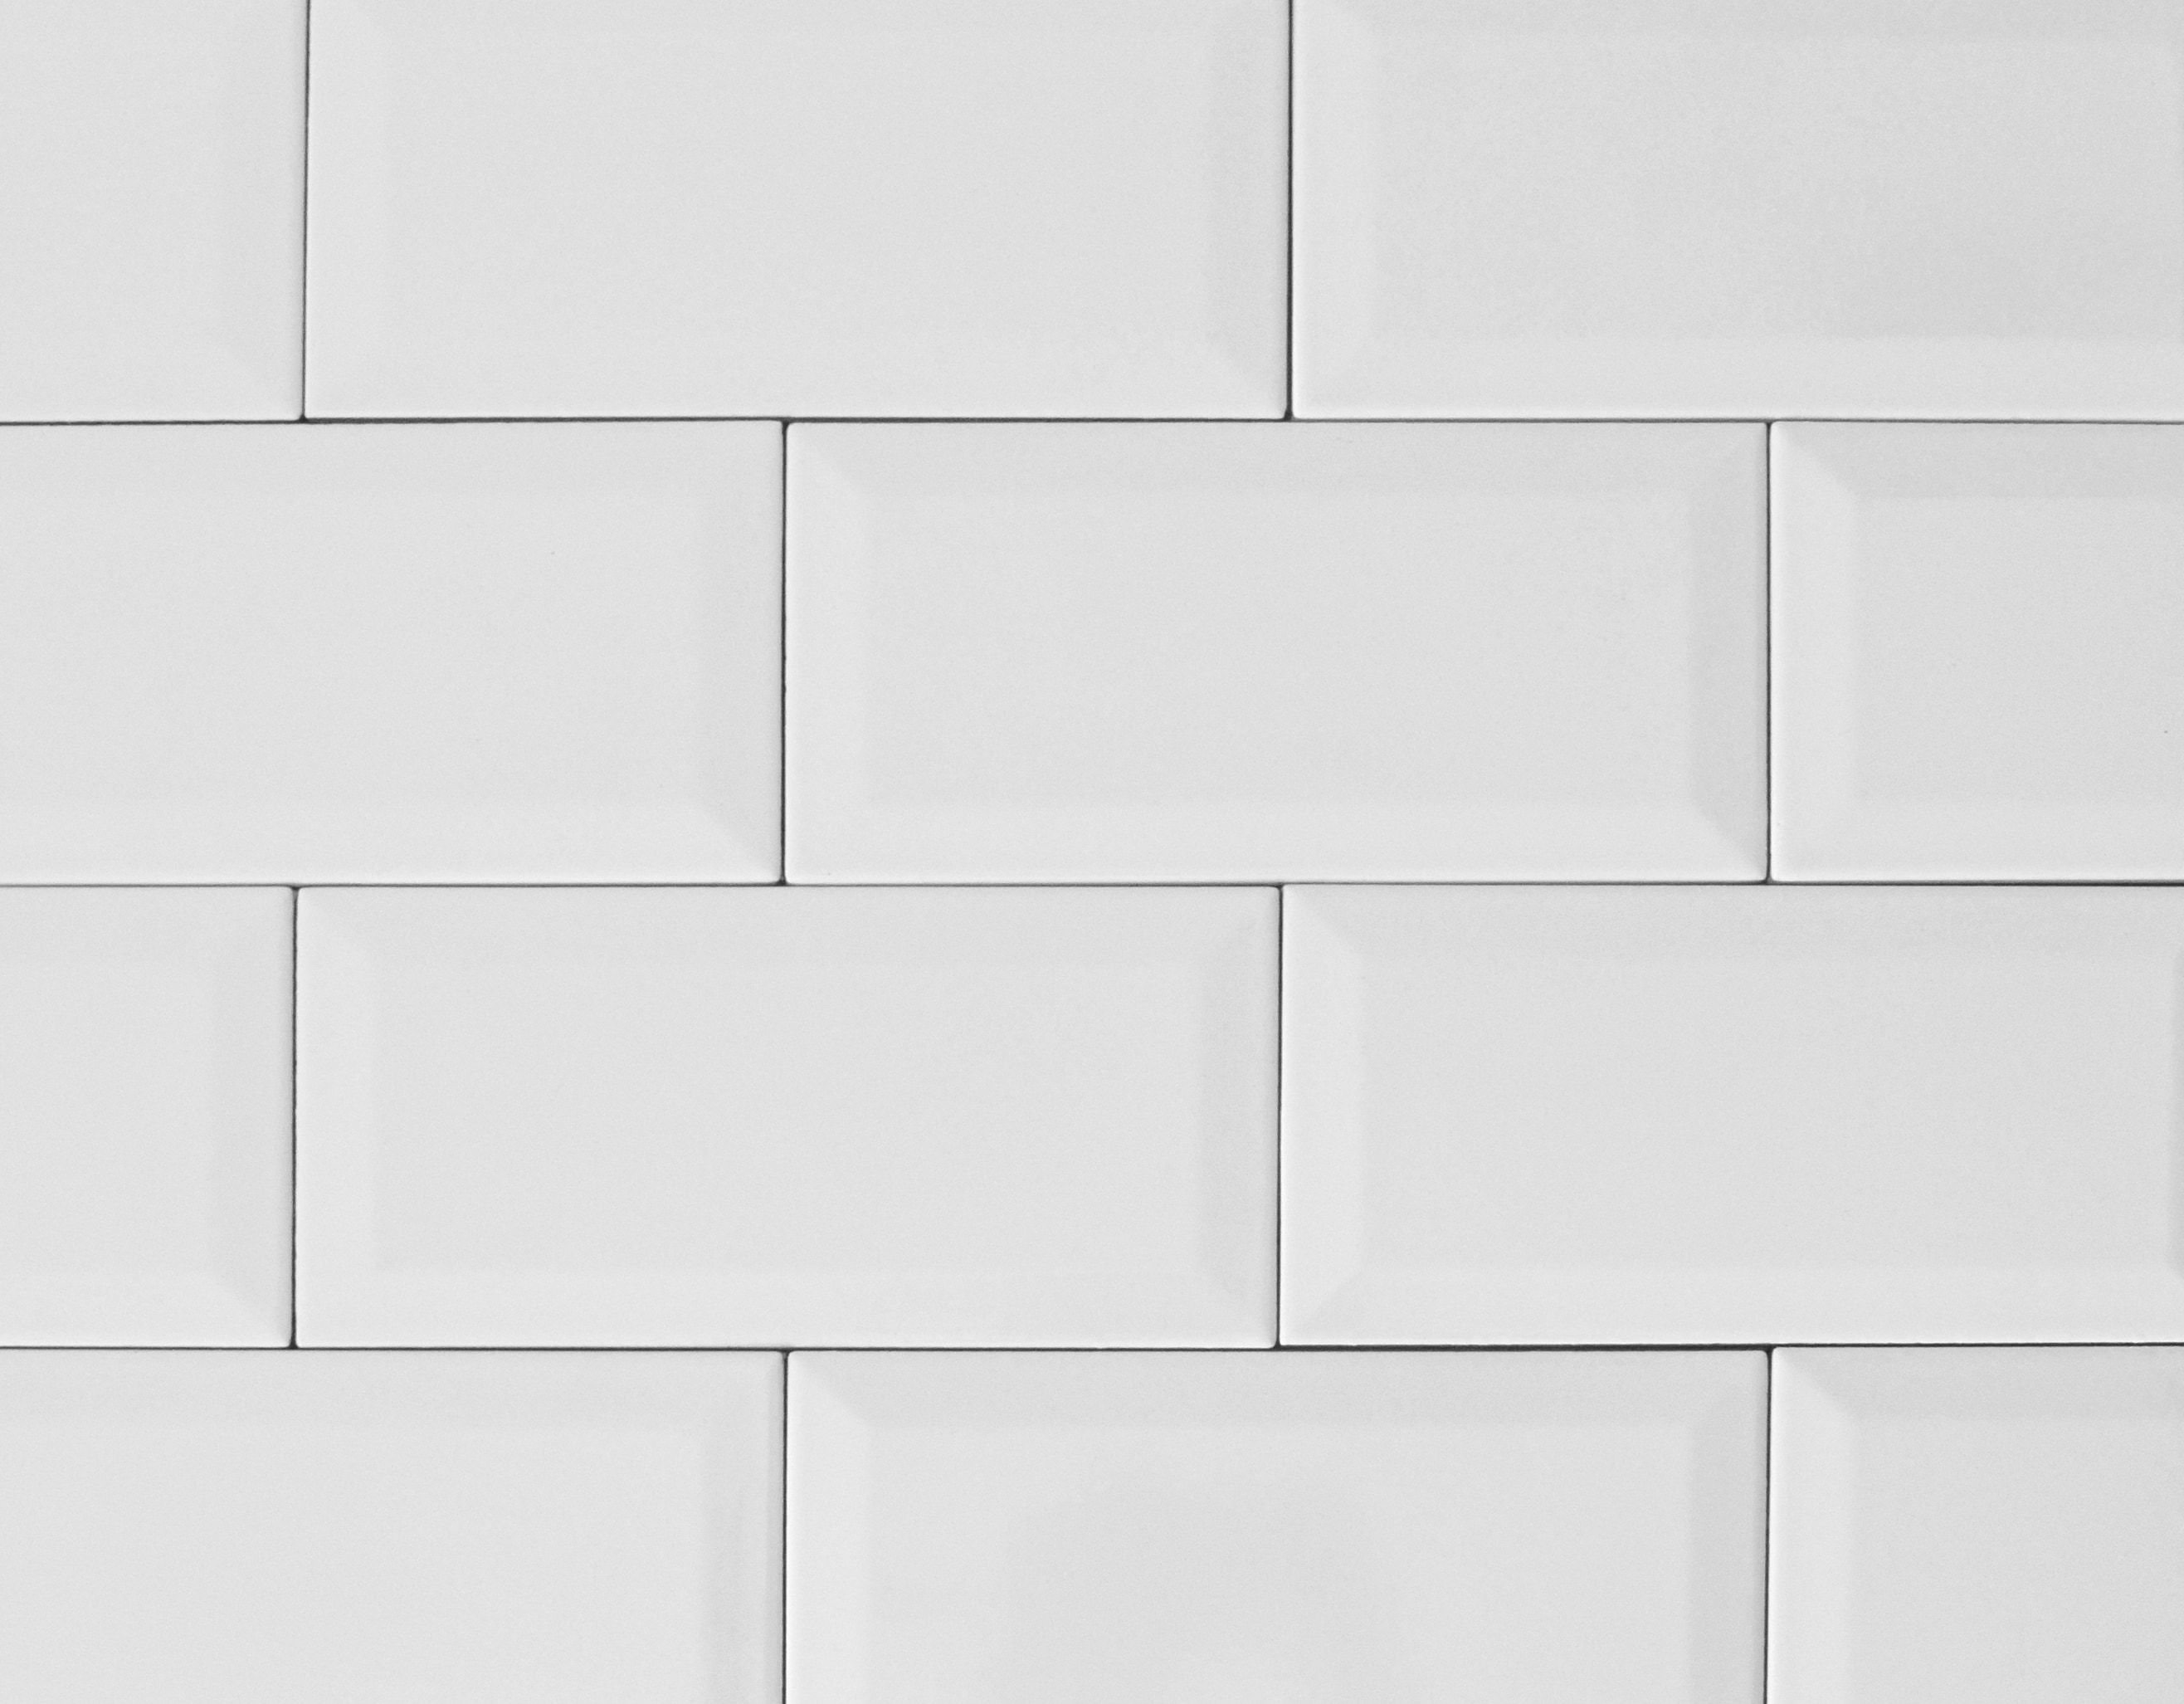 Ceramica splendore subway tile metro tile beveled 4 x 8 ceramica splendore subway tile metro tile beveled 4 x 8 glazed white dailygadgetfo Choice Image